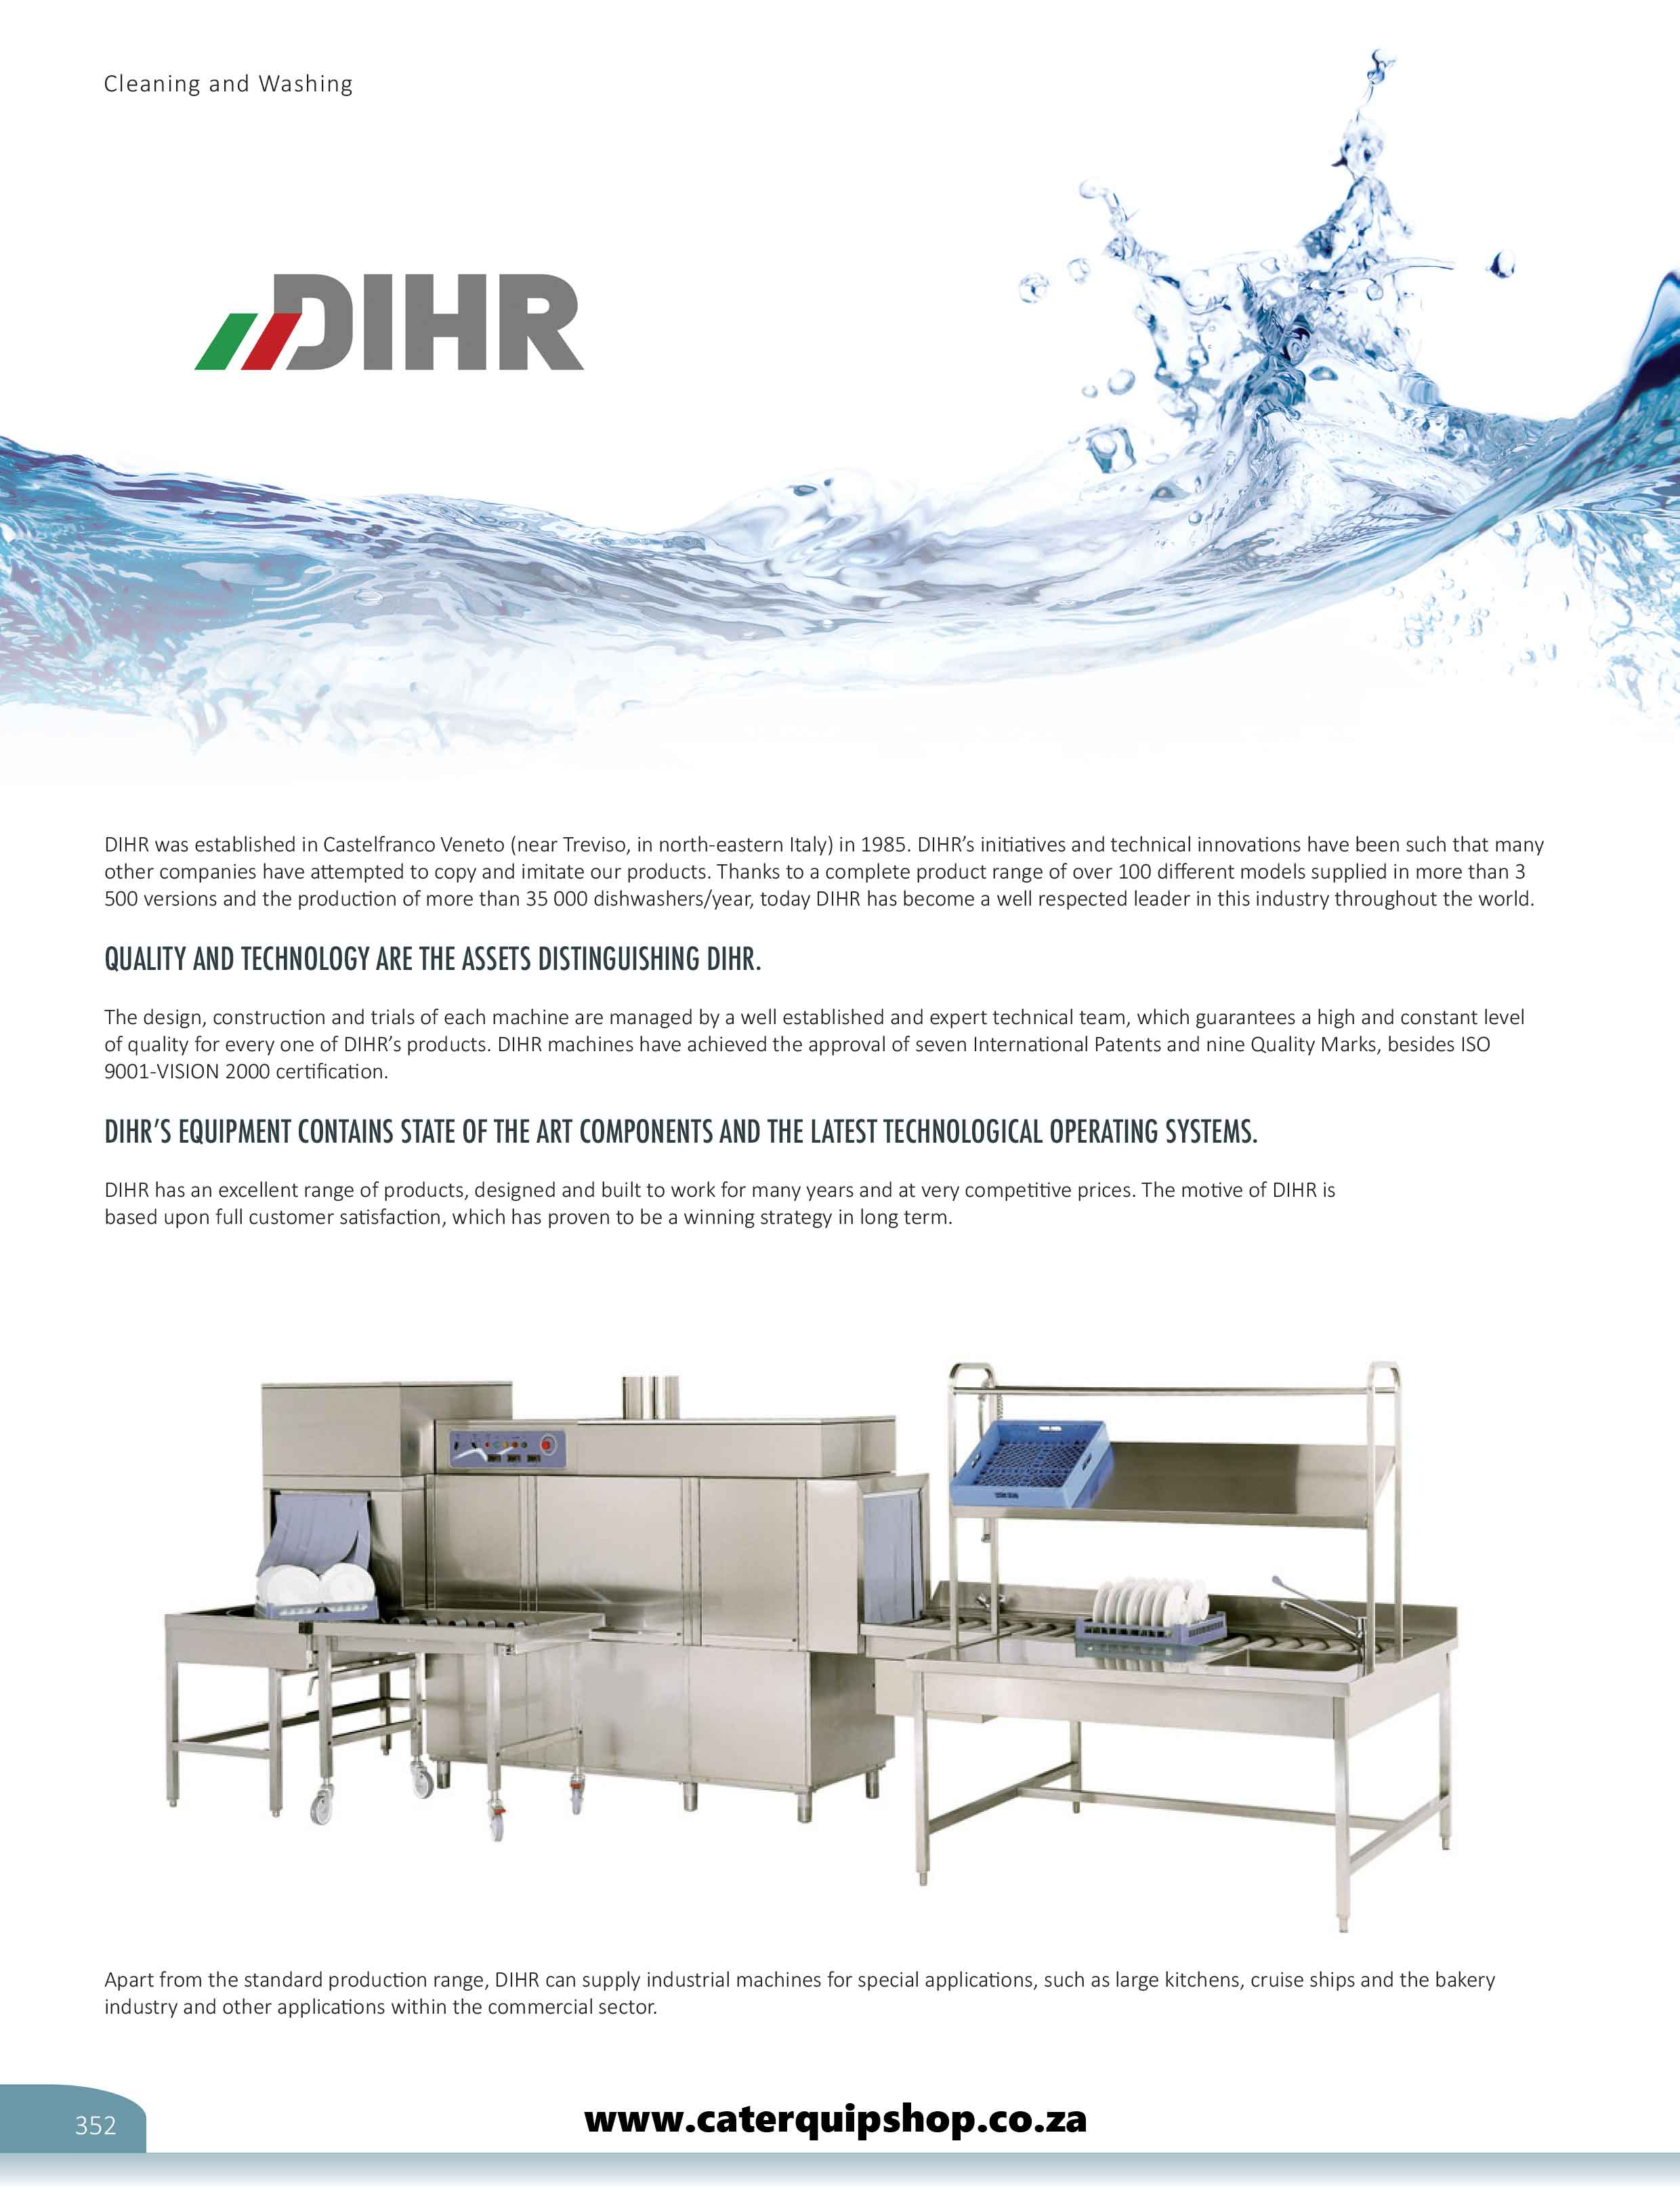 All in One Catering Equipment | Home Page | Catering Equipment